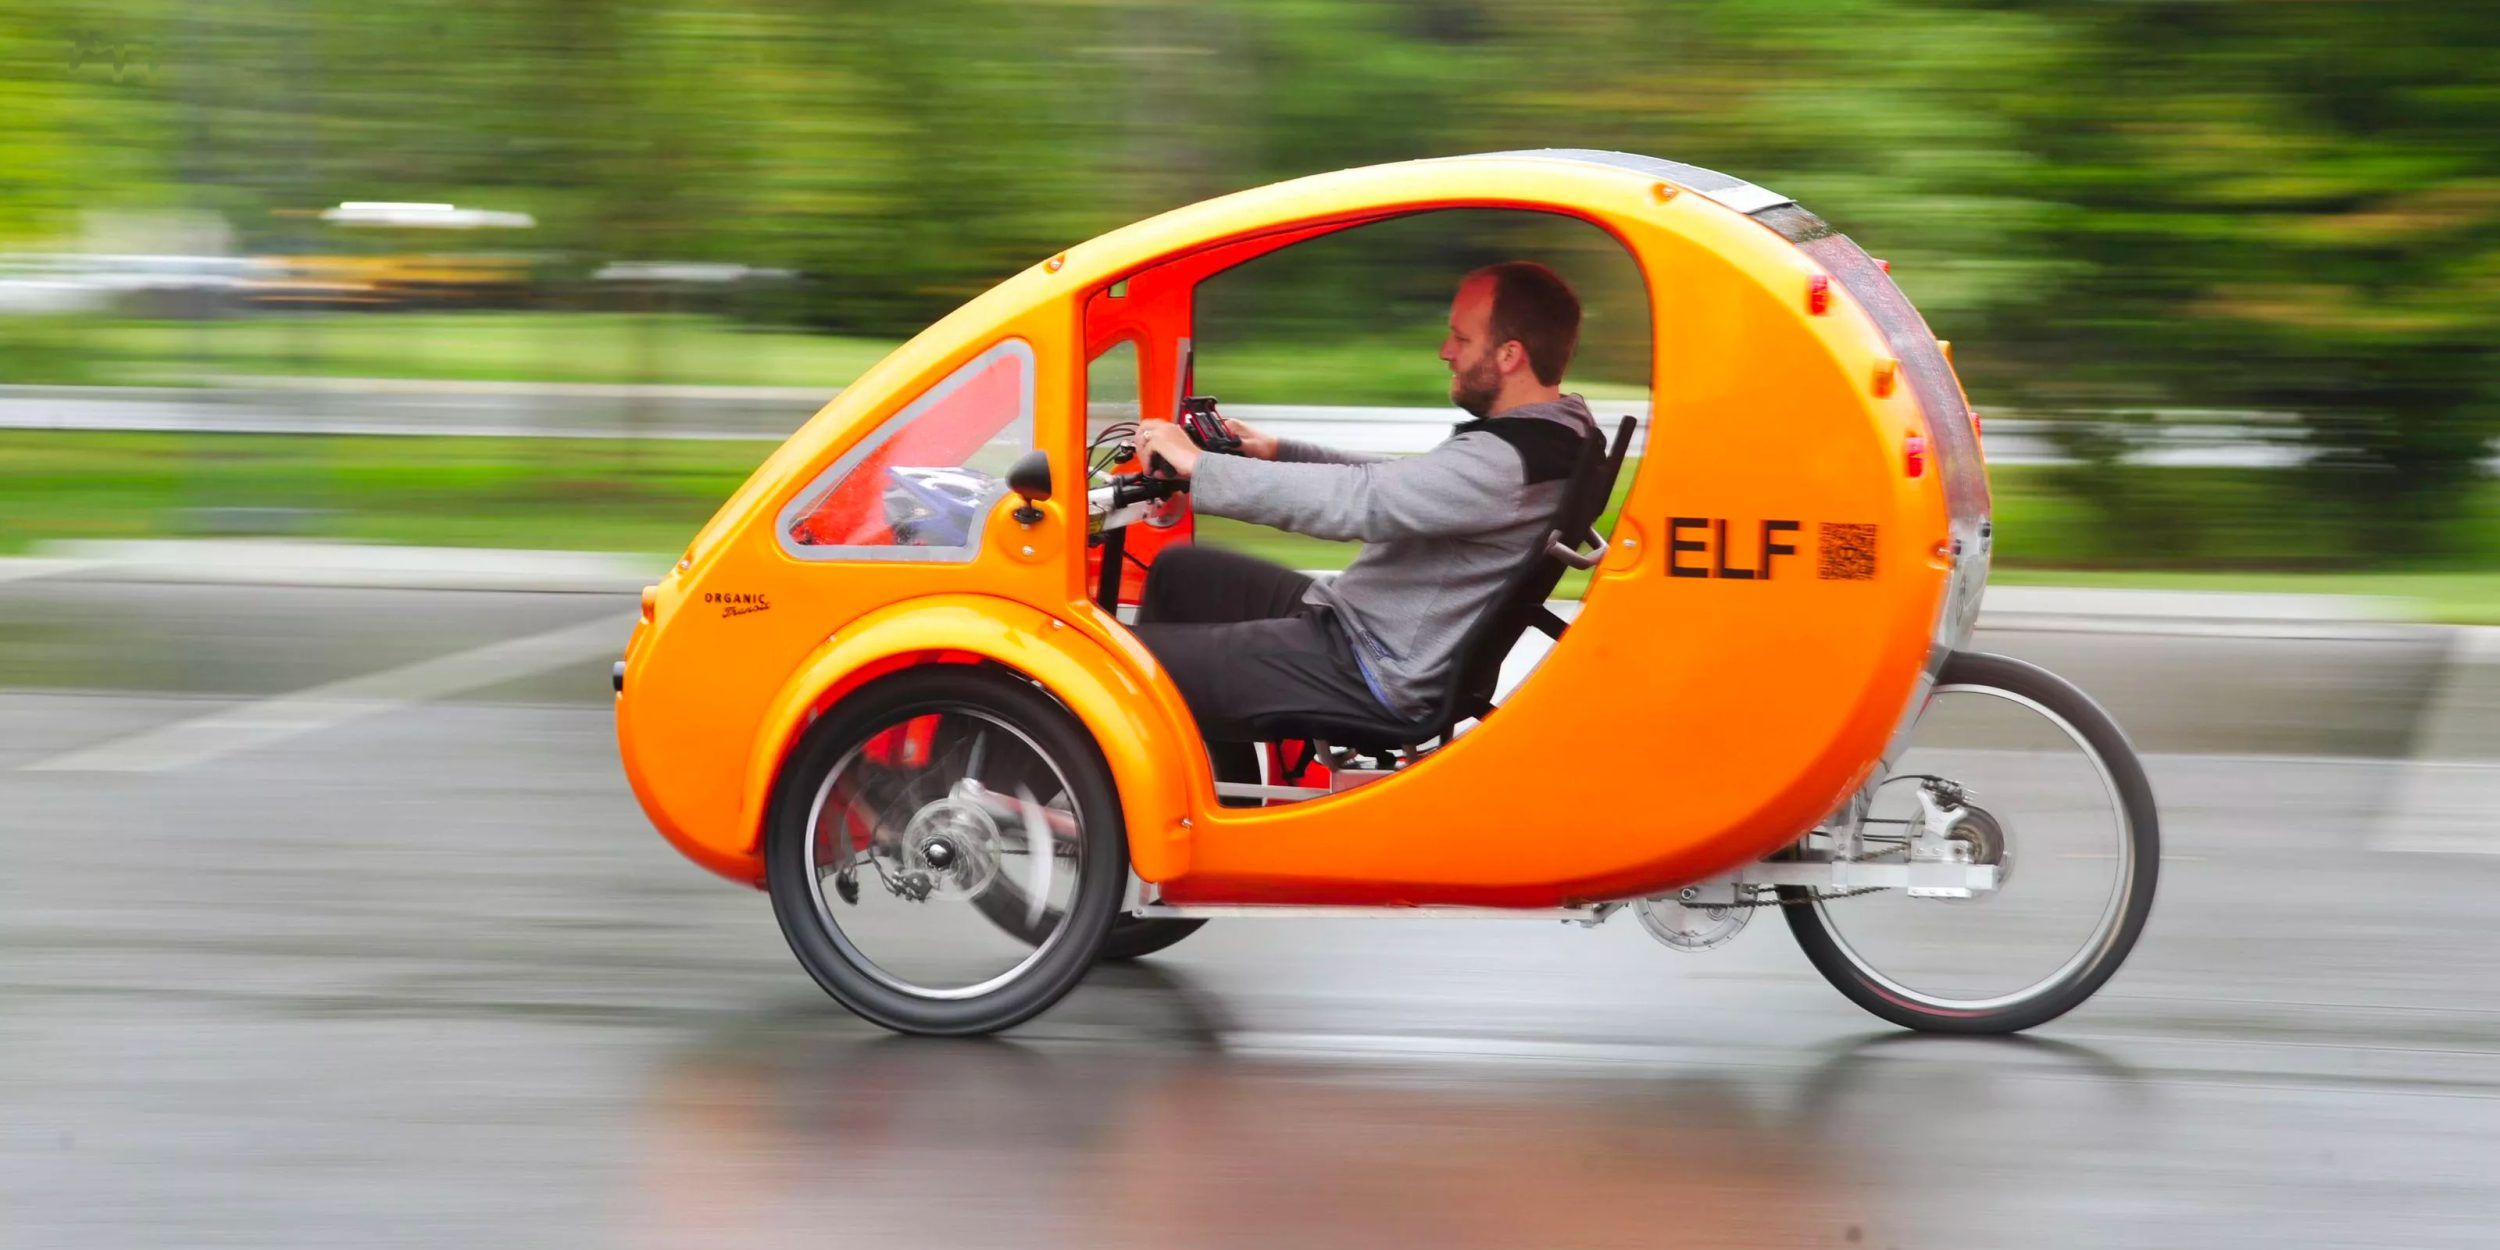 Solar Powered Electric Bike Cars Elf And Pebl Might Just Be Weird Enough To Work Electrek Electric Bike Solar Power Charger Trike